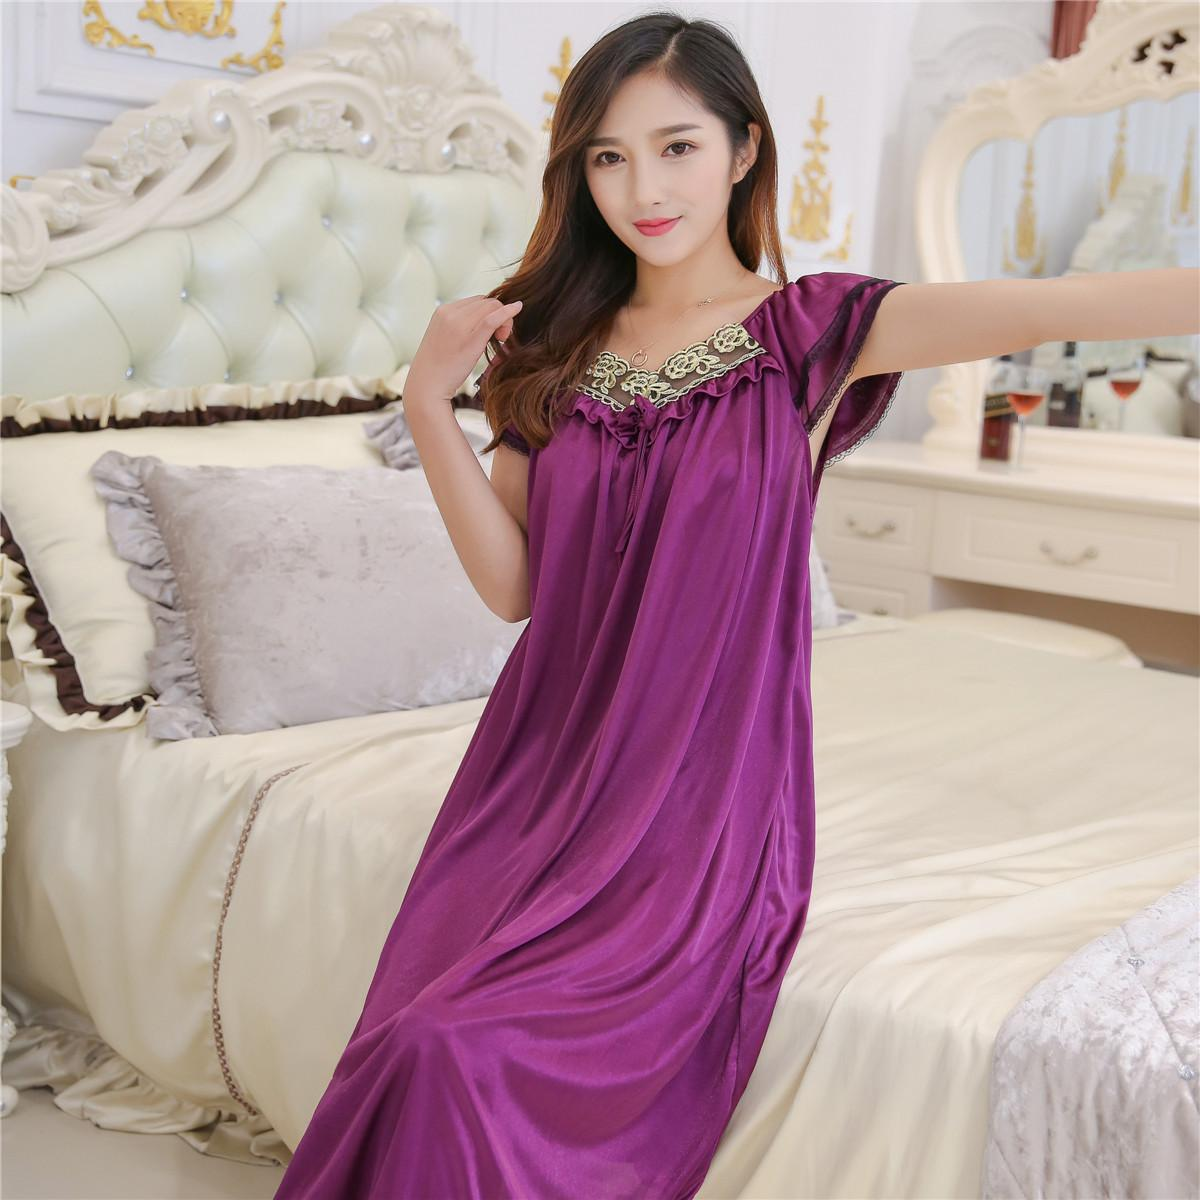 63e36f3e79 2019 Wholesale Lace Nightgowns Summer Ice Silk Nightgown Ms. MM Skirt Plus  Size Fat Thin Clothes Sexy Sleepwear From Dalivid